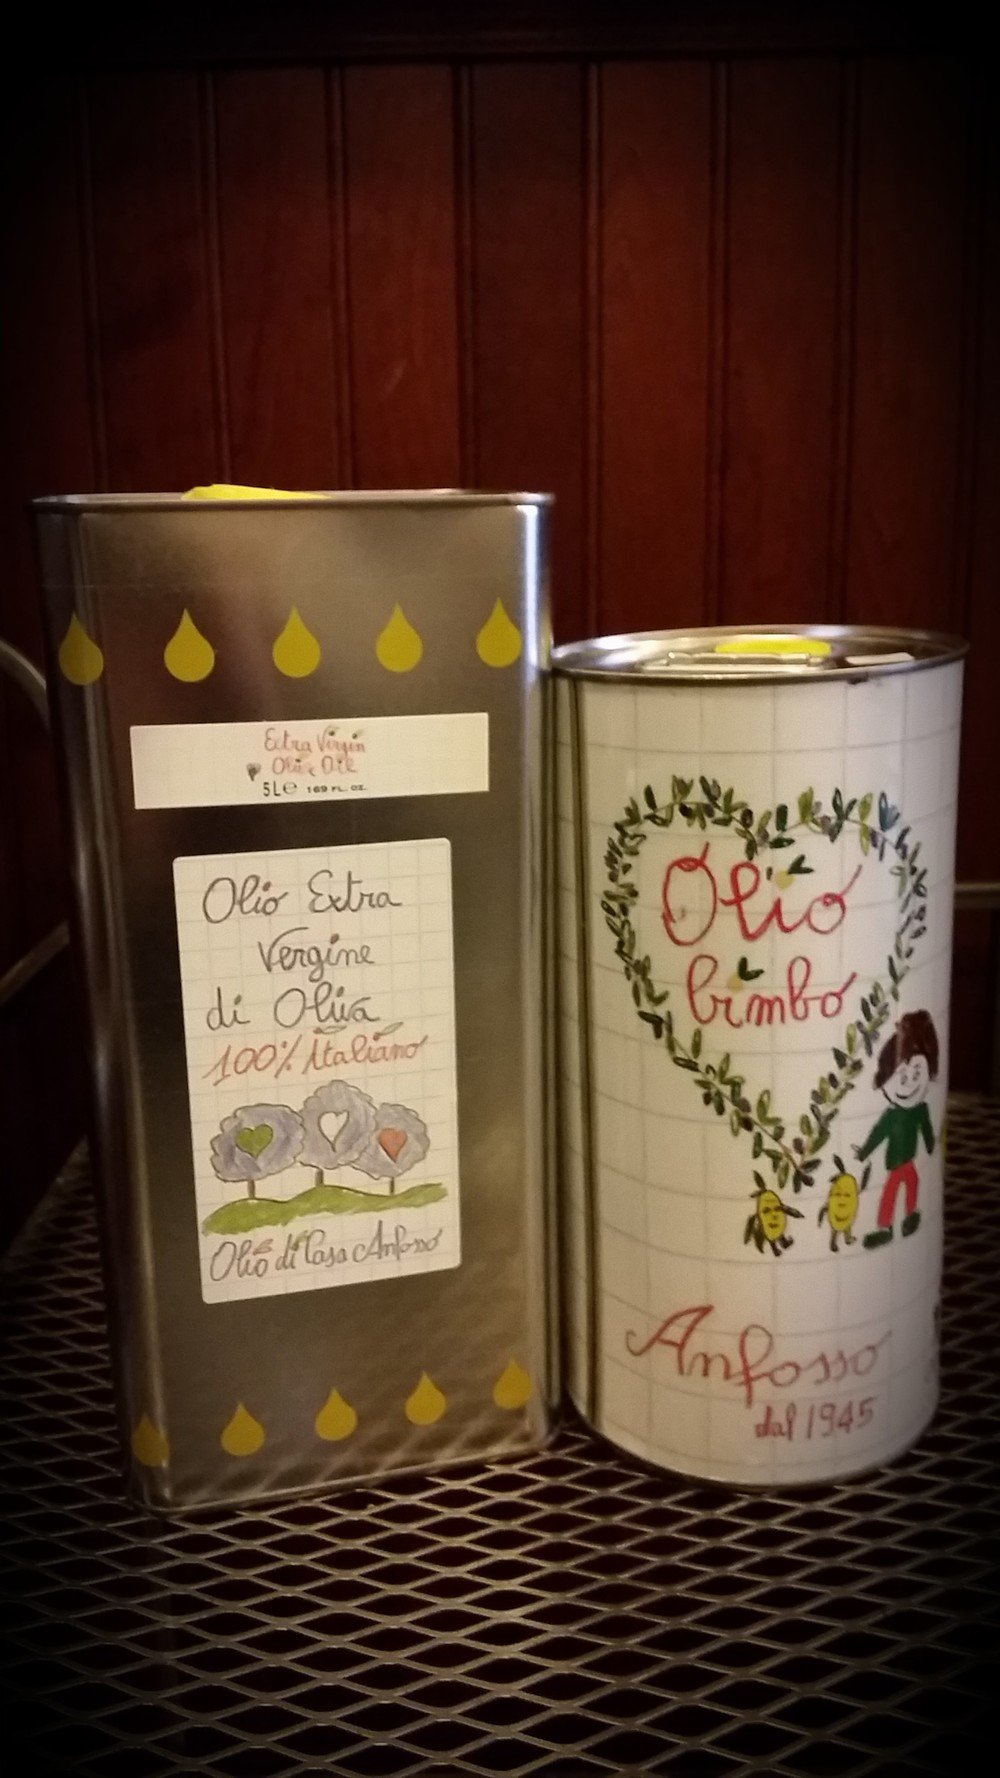 Extravergin olive oil from Ligurian region Italy by Anfosso